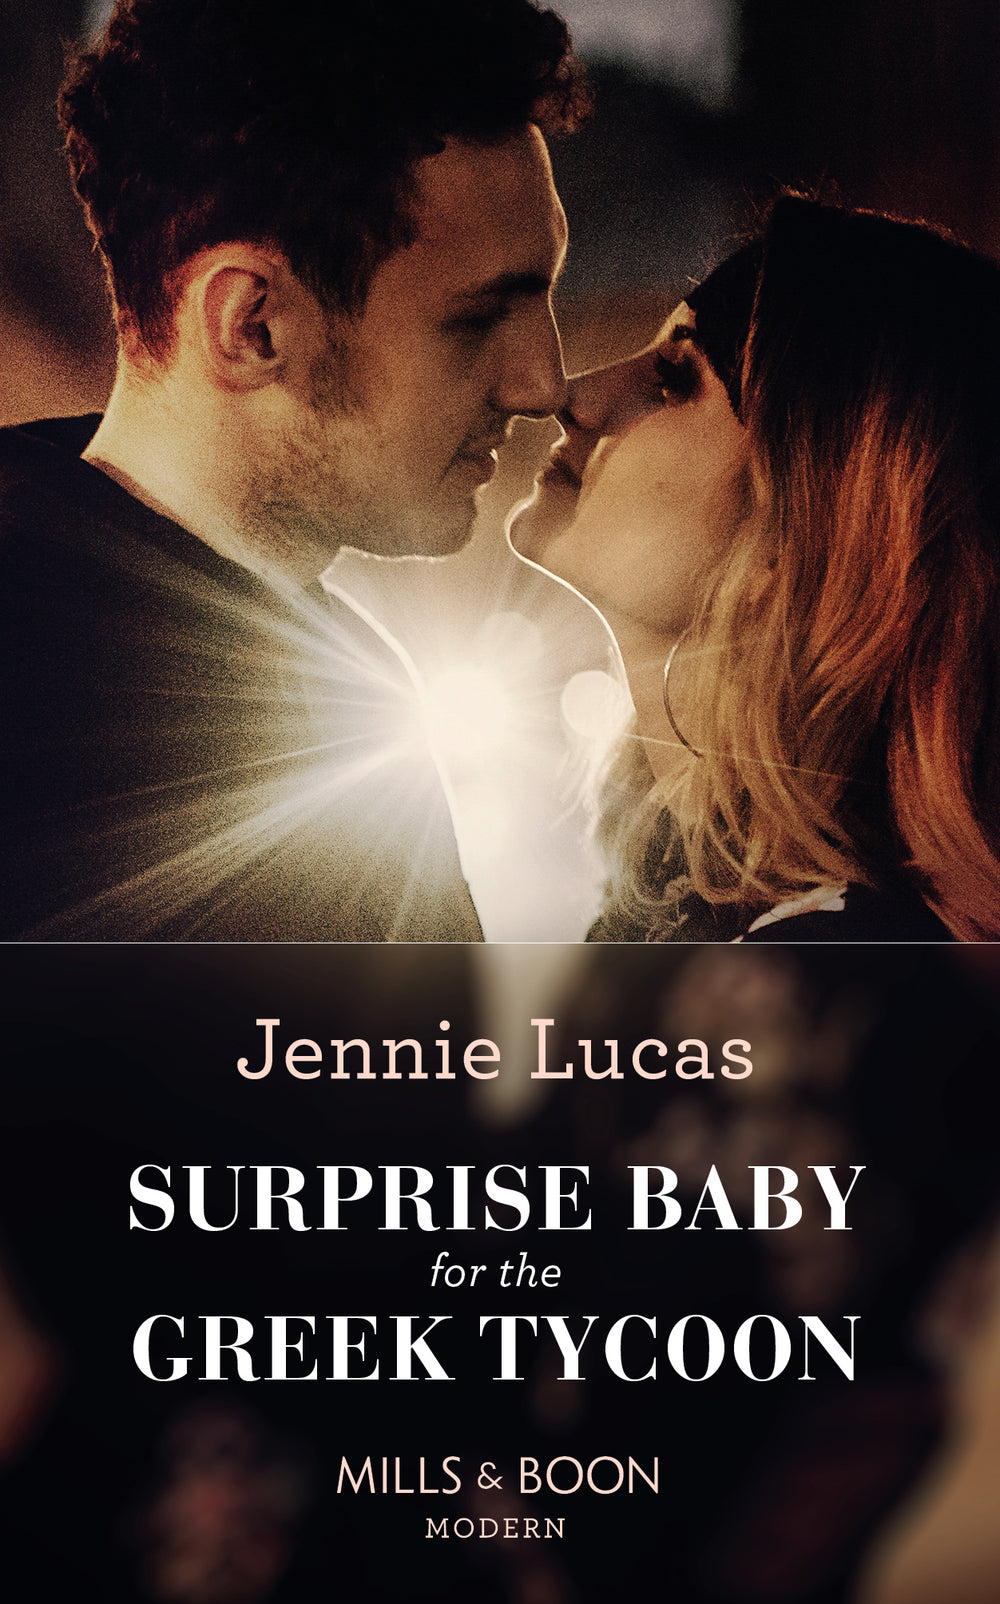 Surprise Baby for the Greek Tycoon - Chapter 10